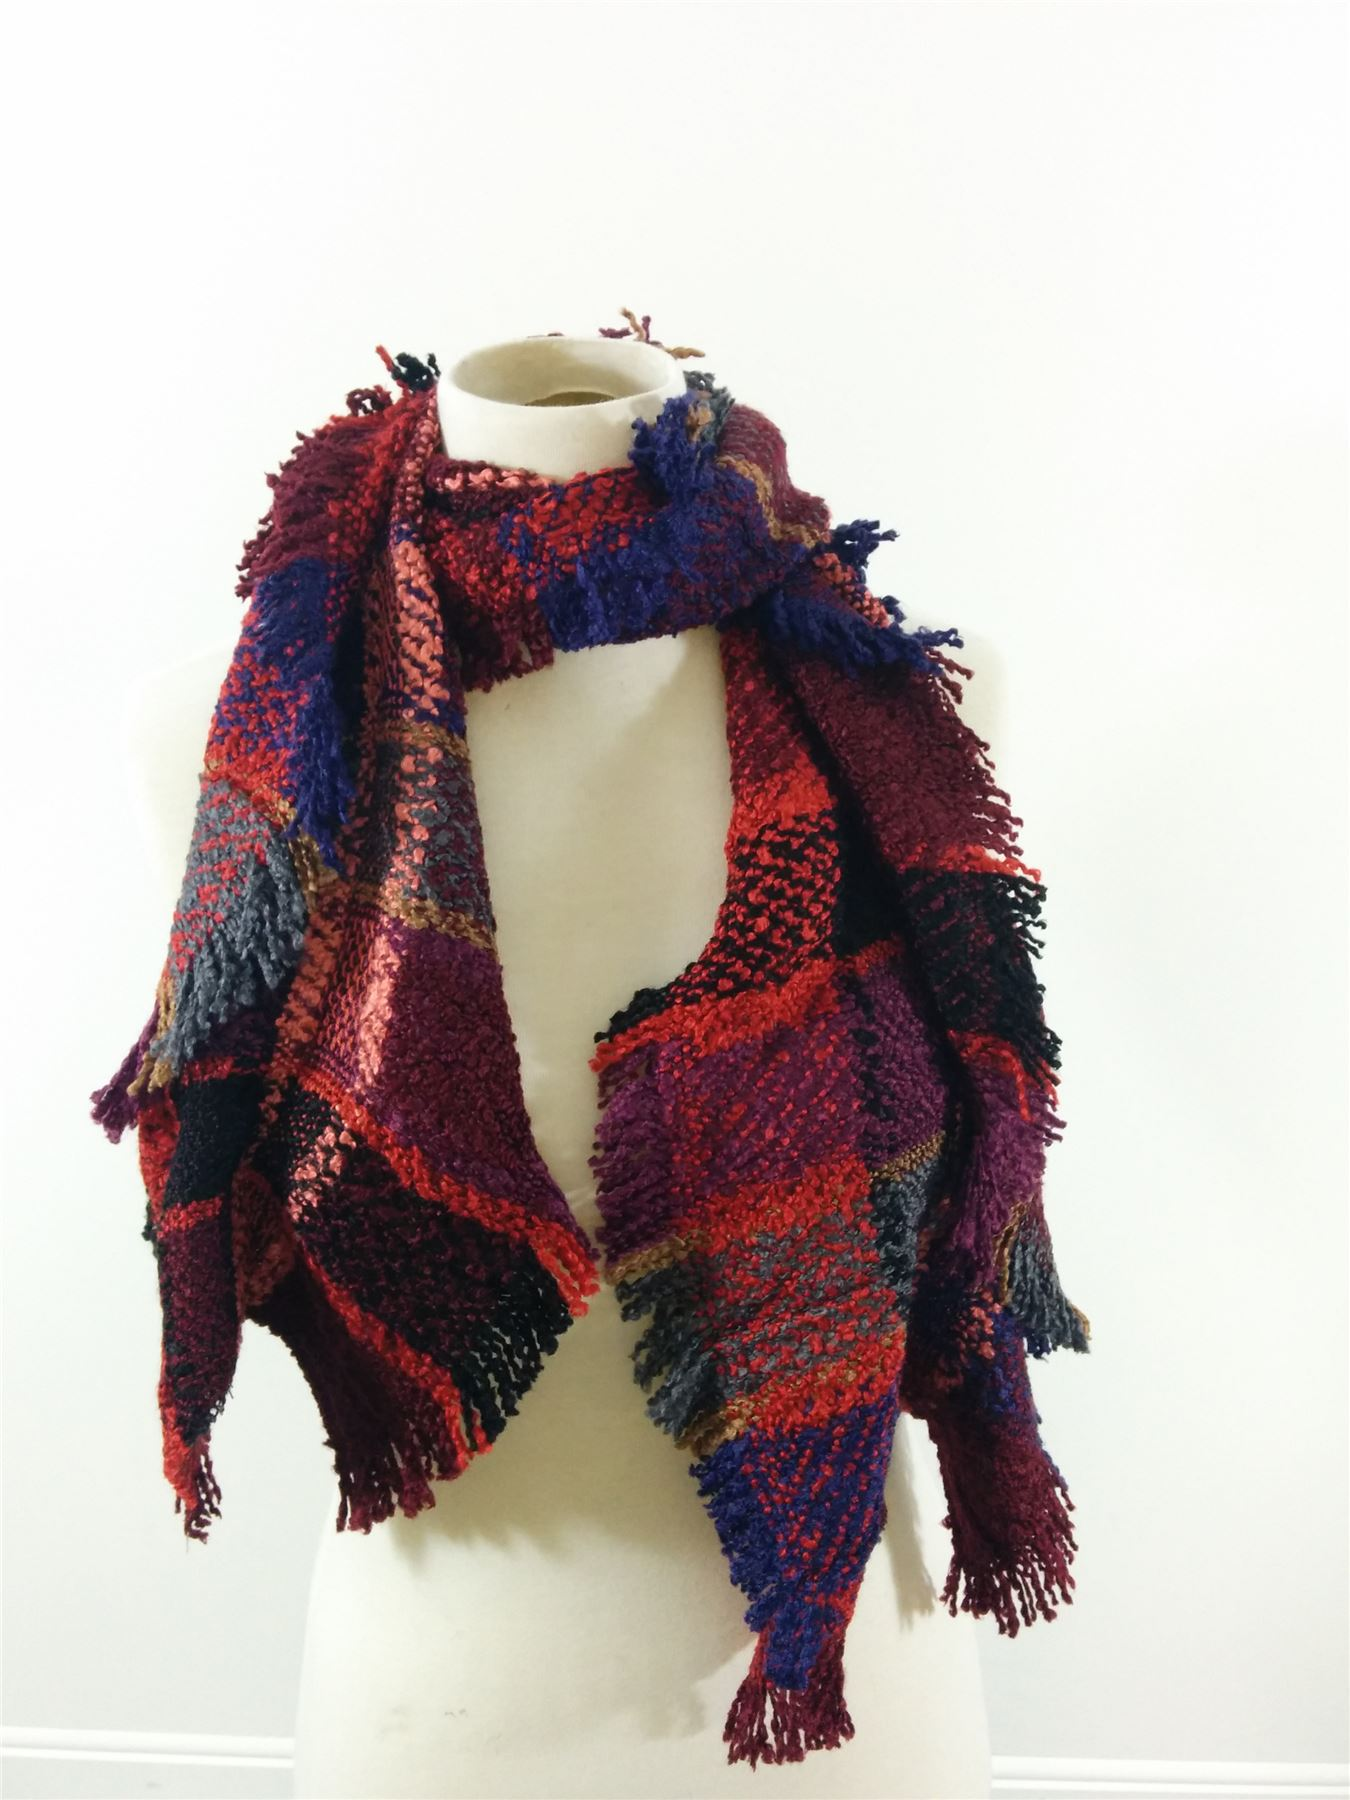 Online shopping for popular & hot Shawls for Sale from Women's Clothing & Accessories, Scarves, Cardigans, Blouses & Shirts and more related Shawls for Sale like Shawls for Sale. Discover over of the best Selection Shawls for Sale on cybergamesl.ga Besides, various selected Shawls for Sale brands are prepared for you to choose.